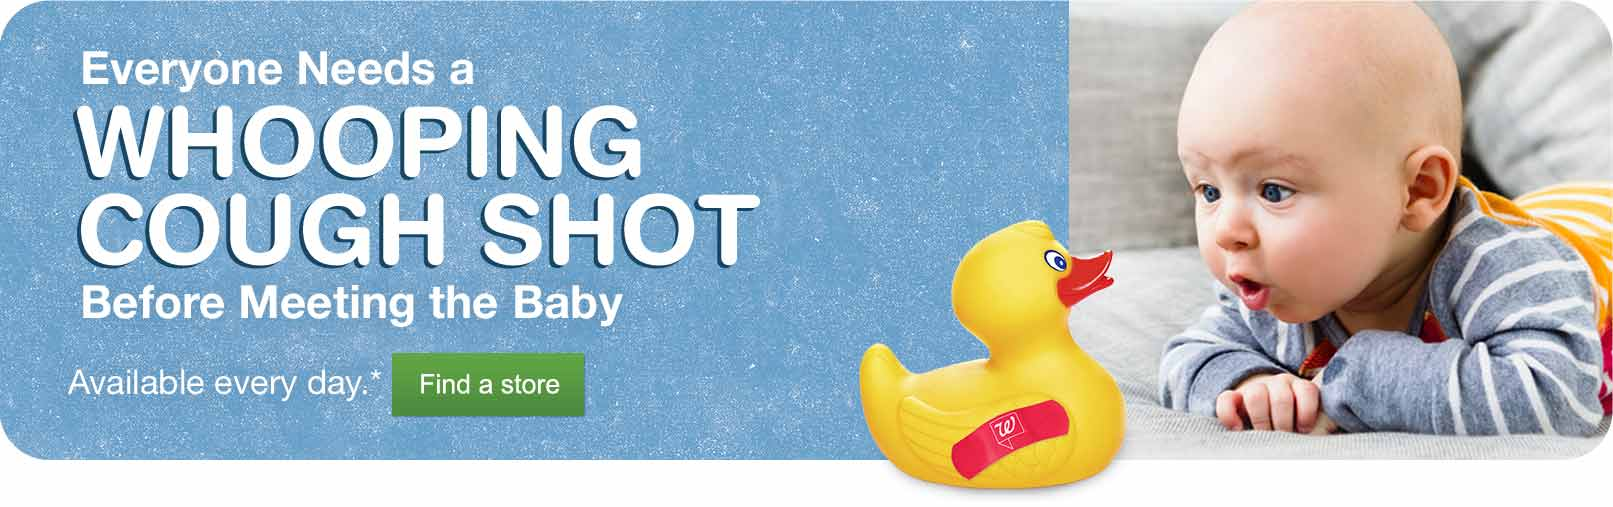 Everyone Needs a Whooping Cough Shot Before Meeting the Baby. Available every day.* Find a store.